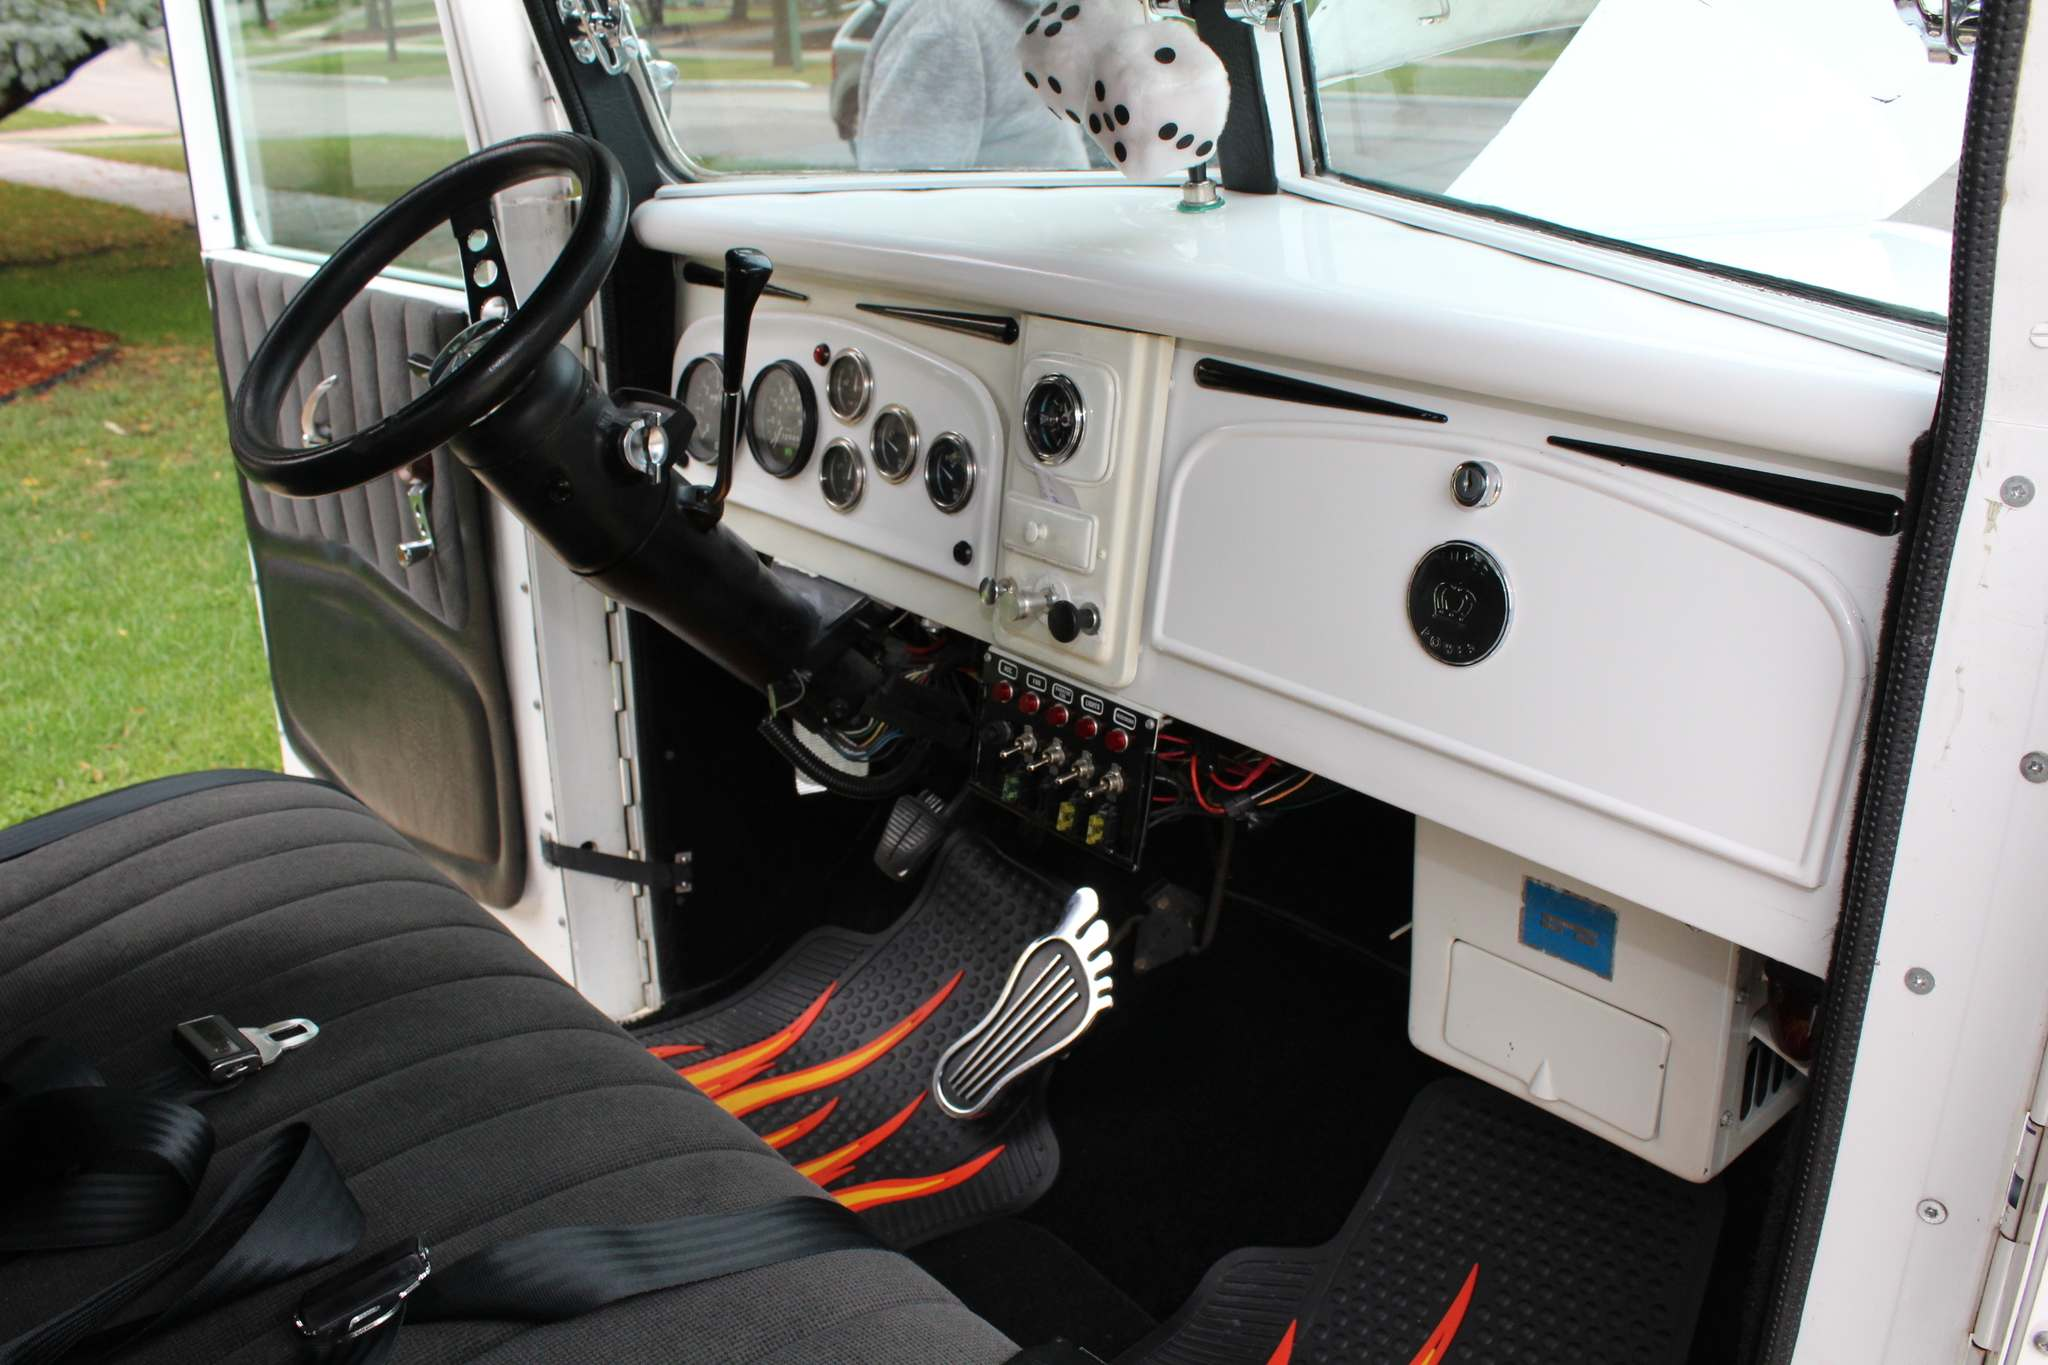 Interior features include a GMC steering column, reupholstered bench seat from a Ford Ranger pickup and a nifty barefoot gas pedal.